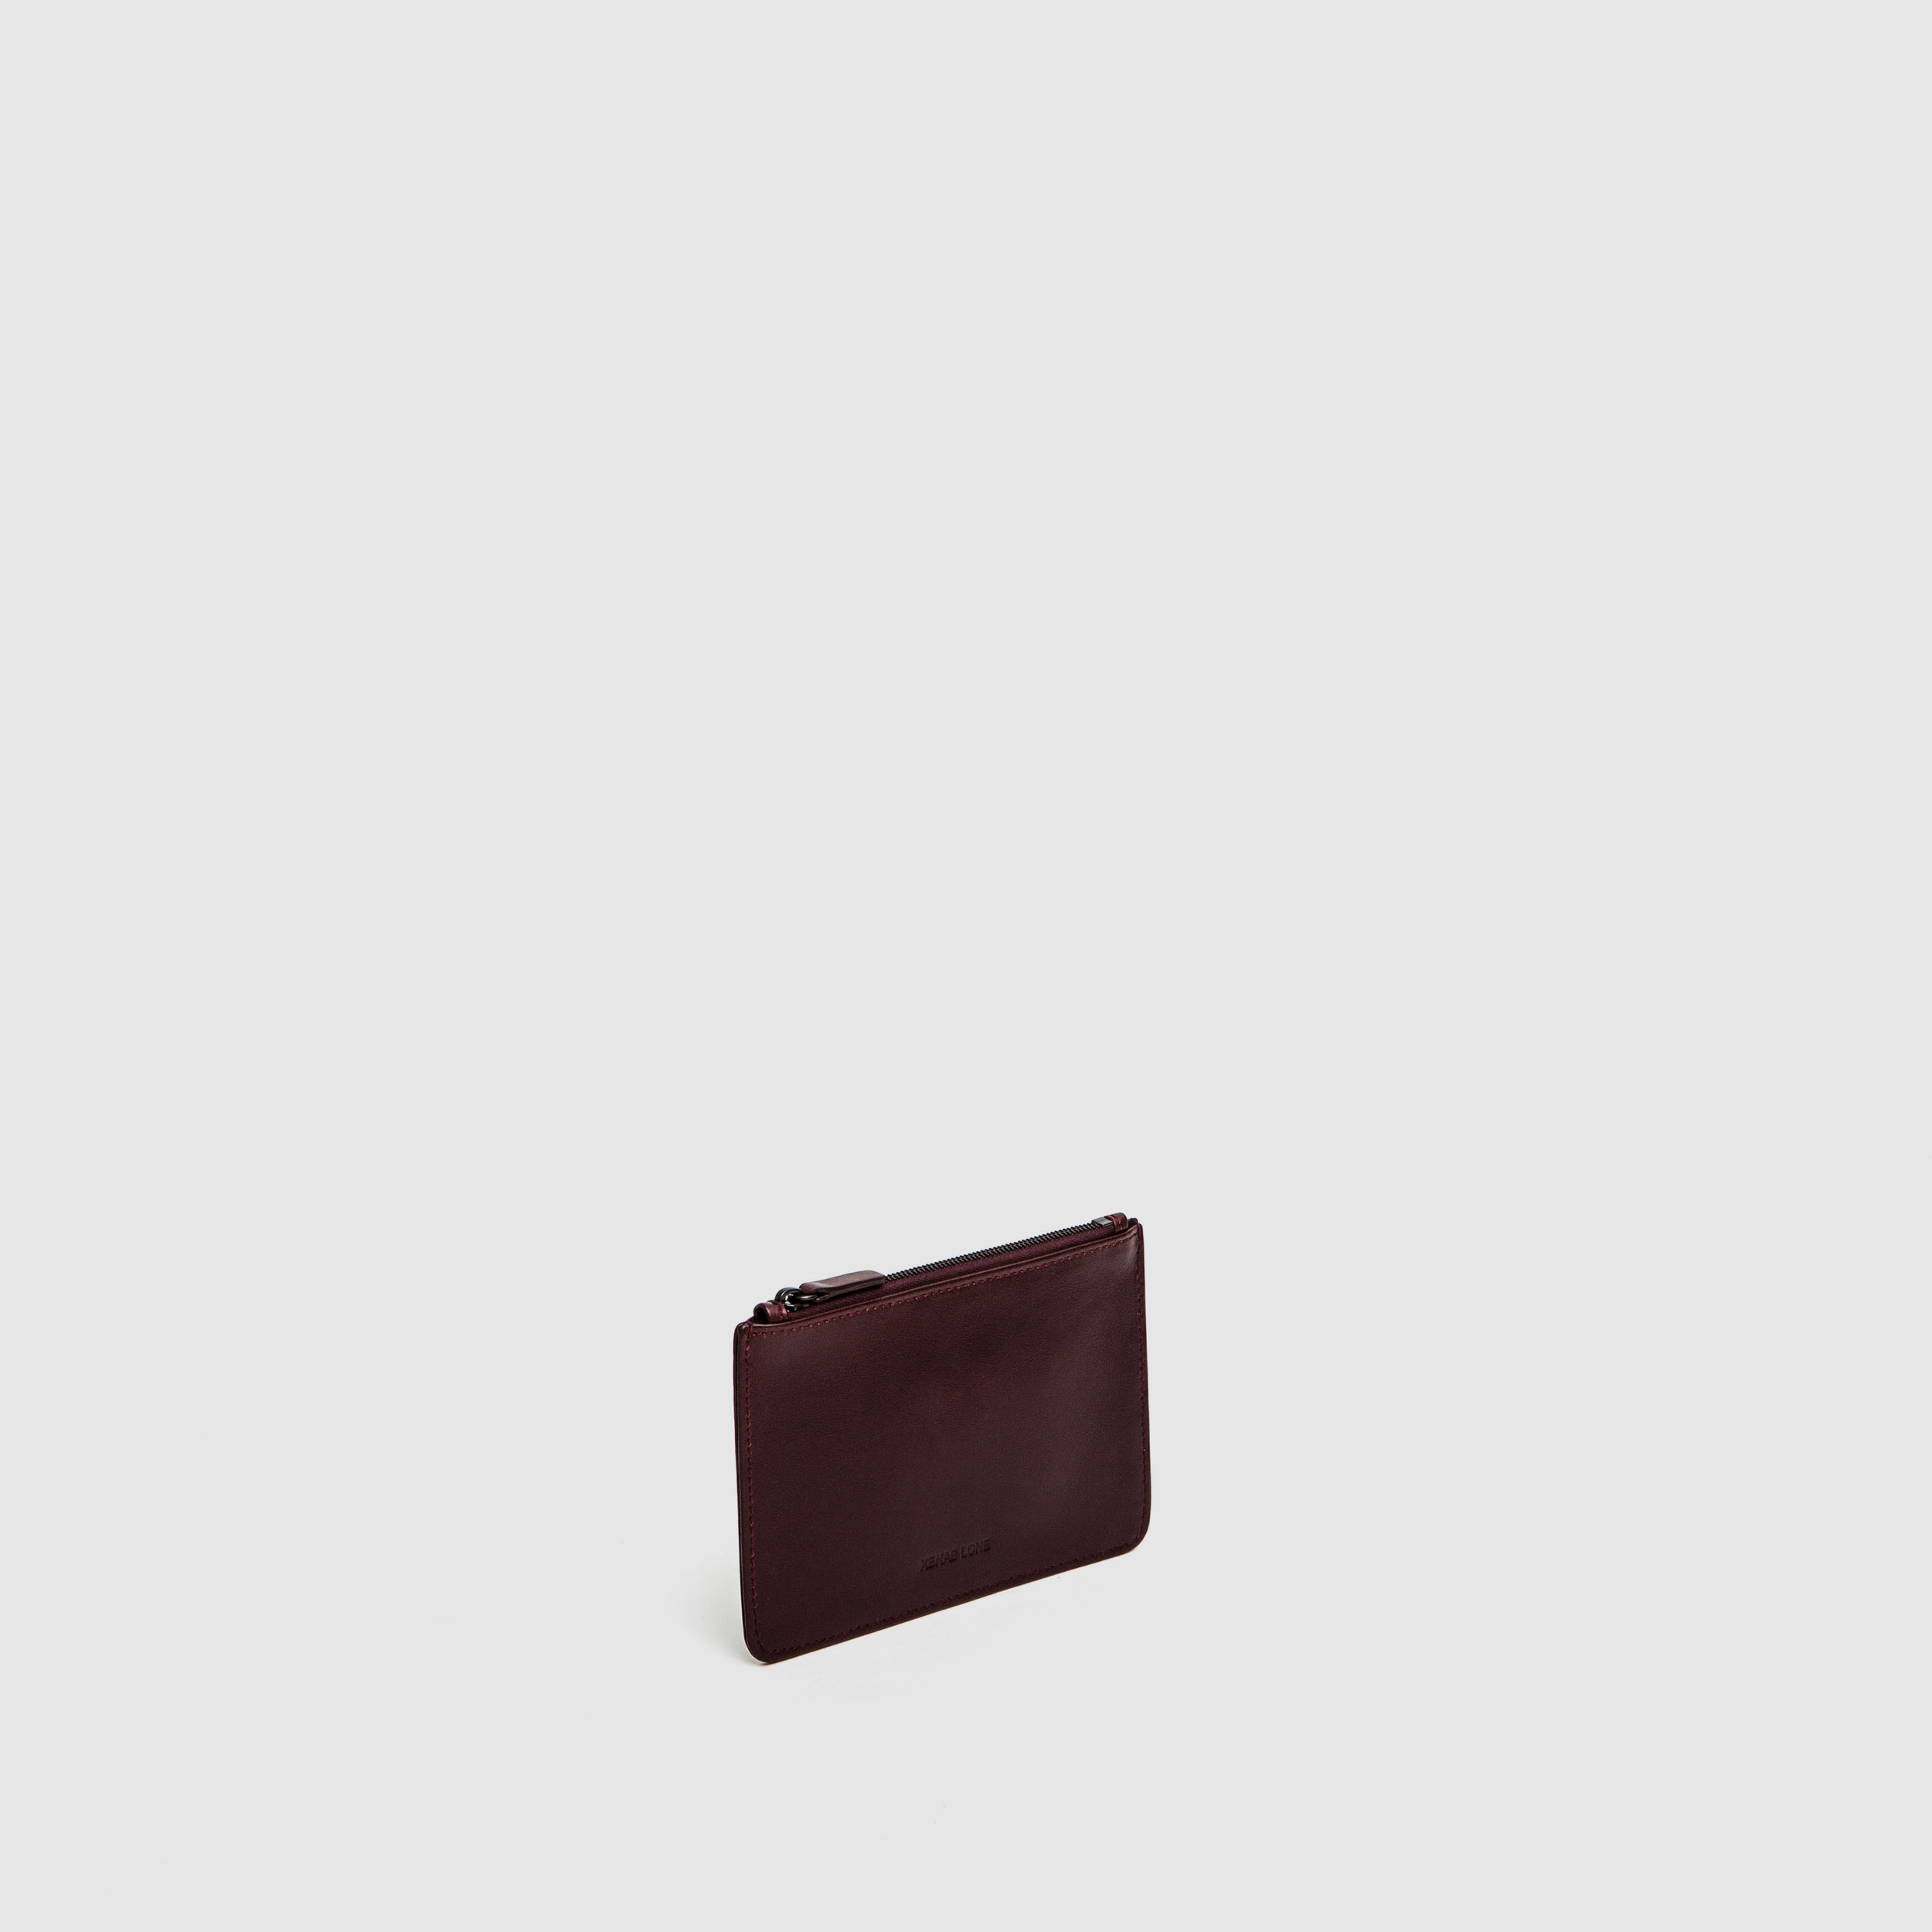 Wallets&Pouches_0001s_0000s_0003_Layer 42.jpg